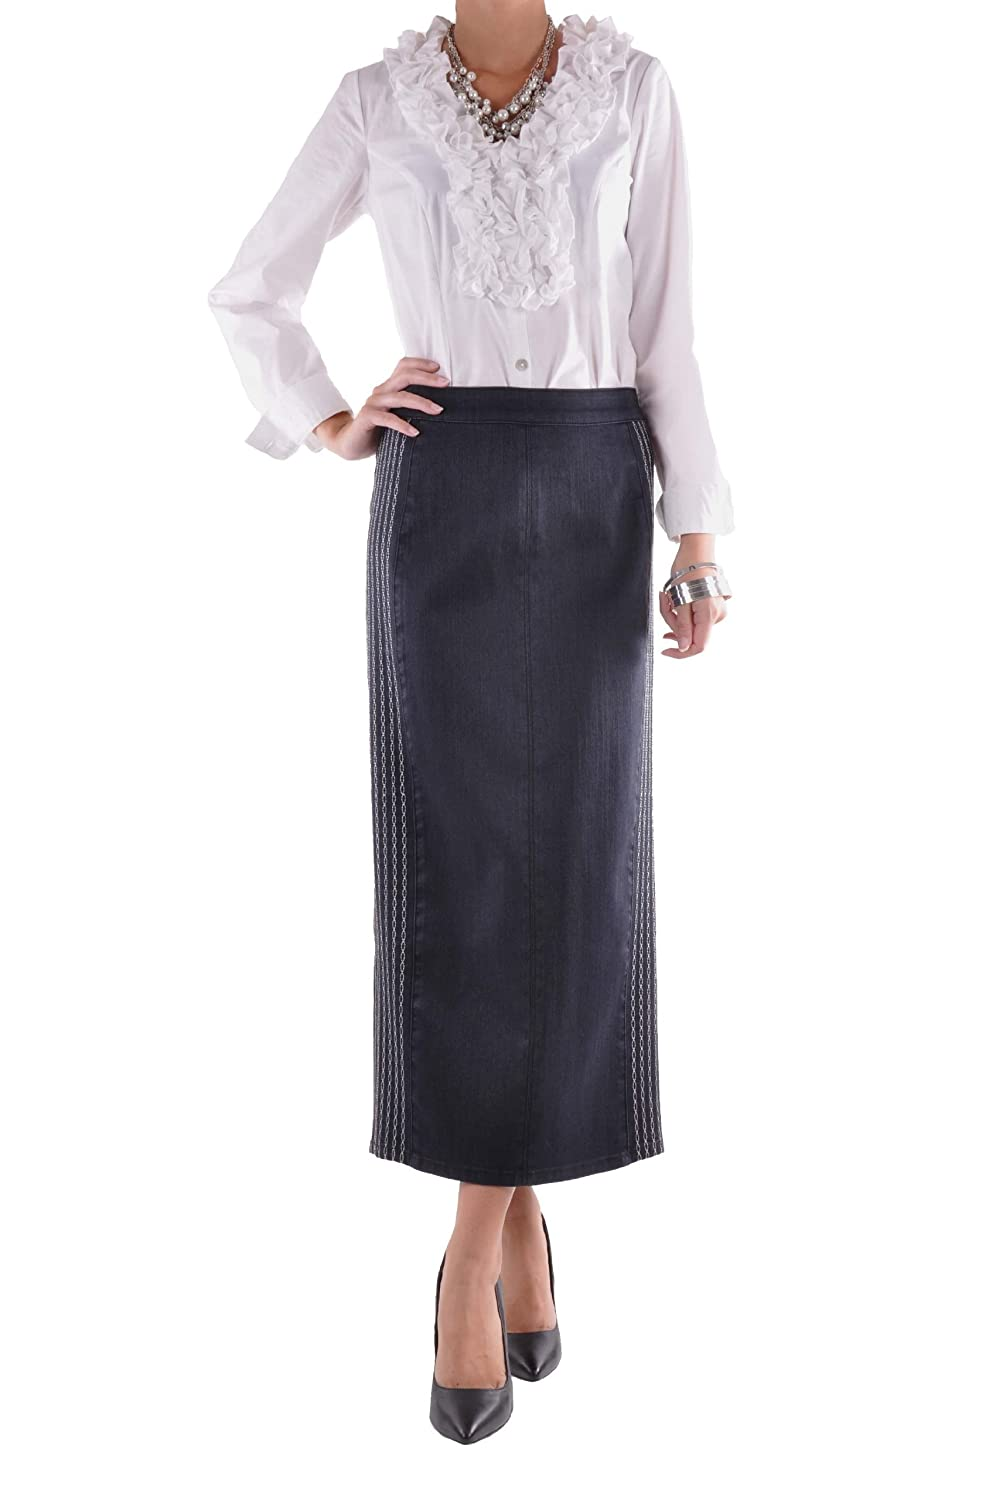 Style J Office Chic Denim Skirt